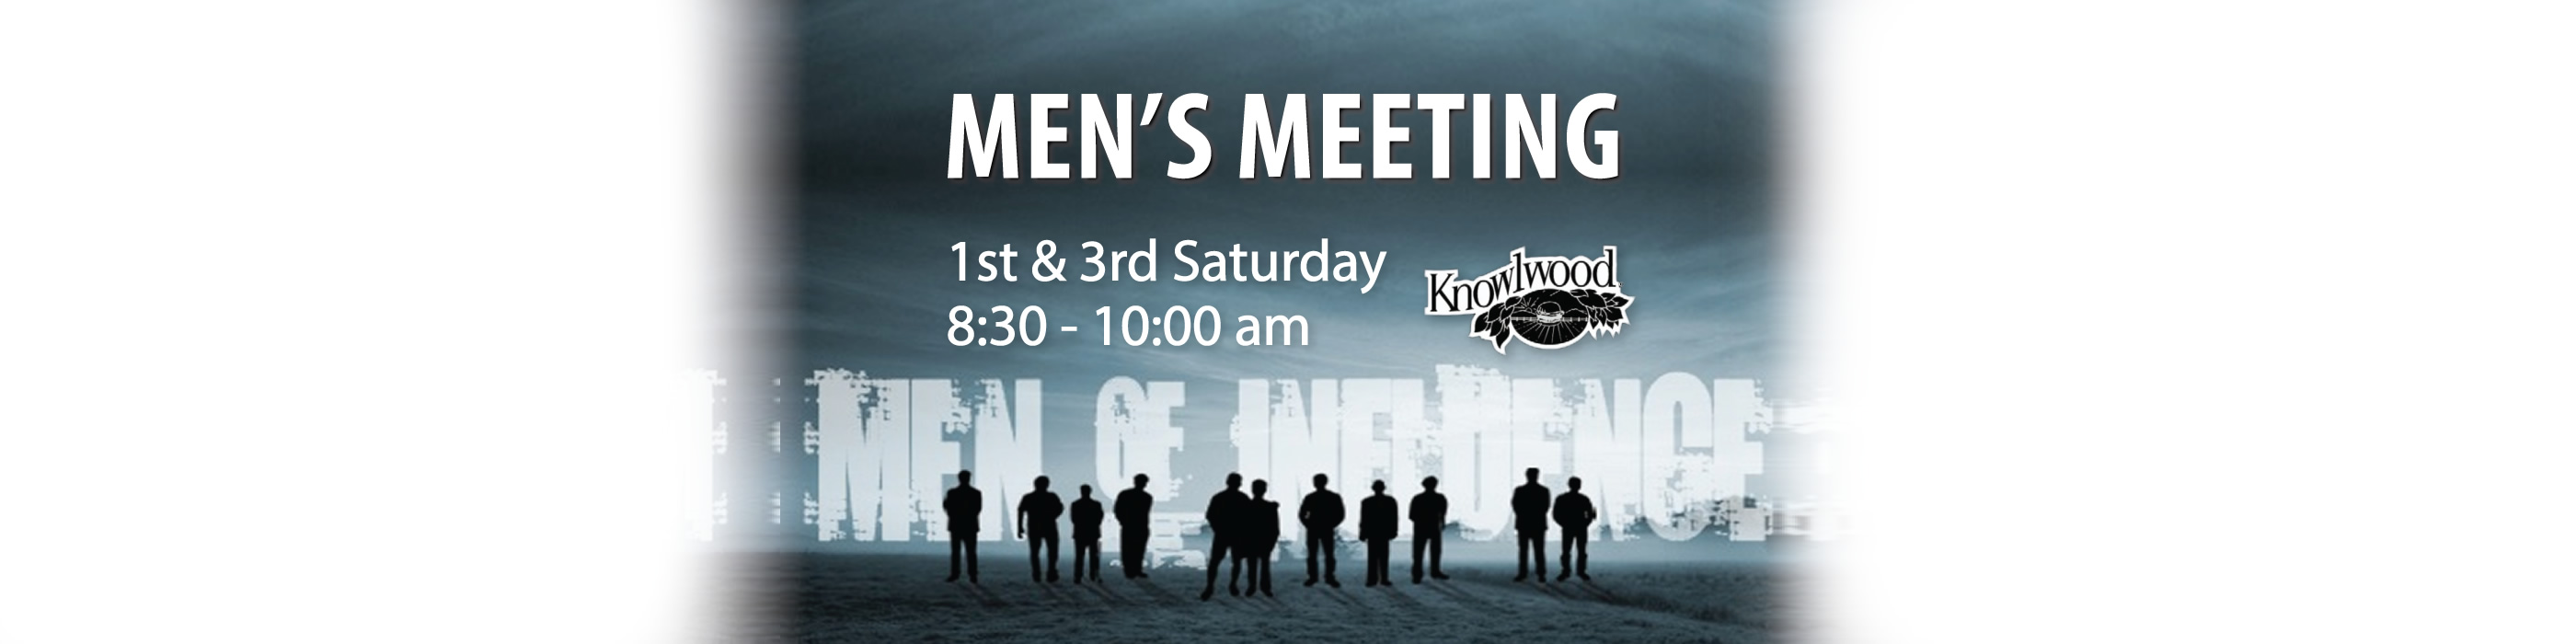 mens-meeting